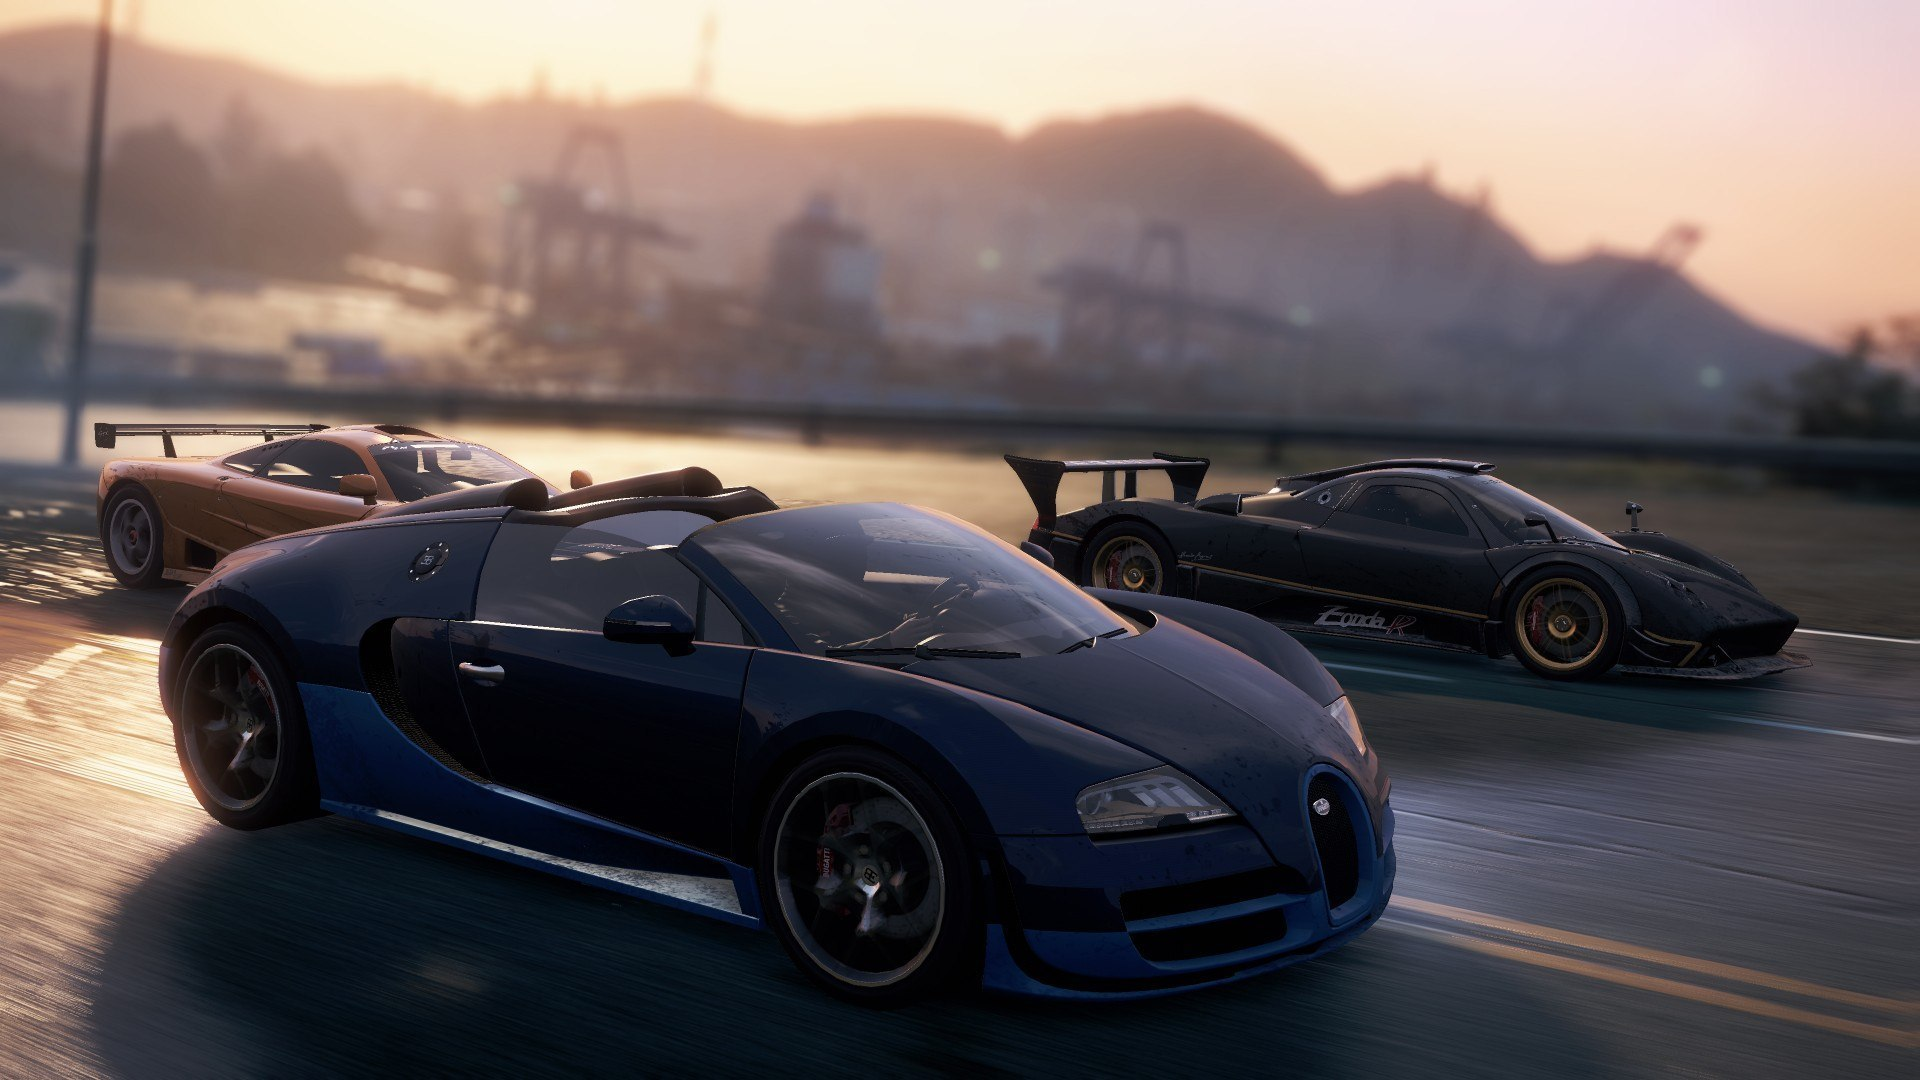 supercar need for speed most wanted 2012 veyron grand sport vitesse zonda r mclaren sports cars. Black Bedroom Furniture Sets. Home Design Ideas